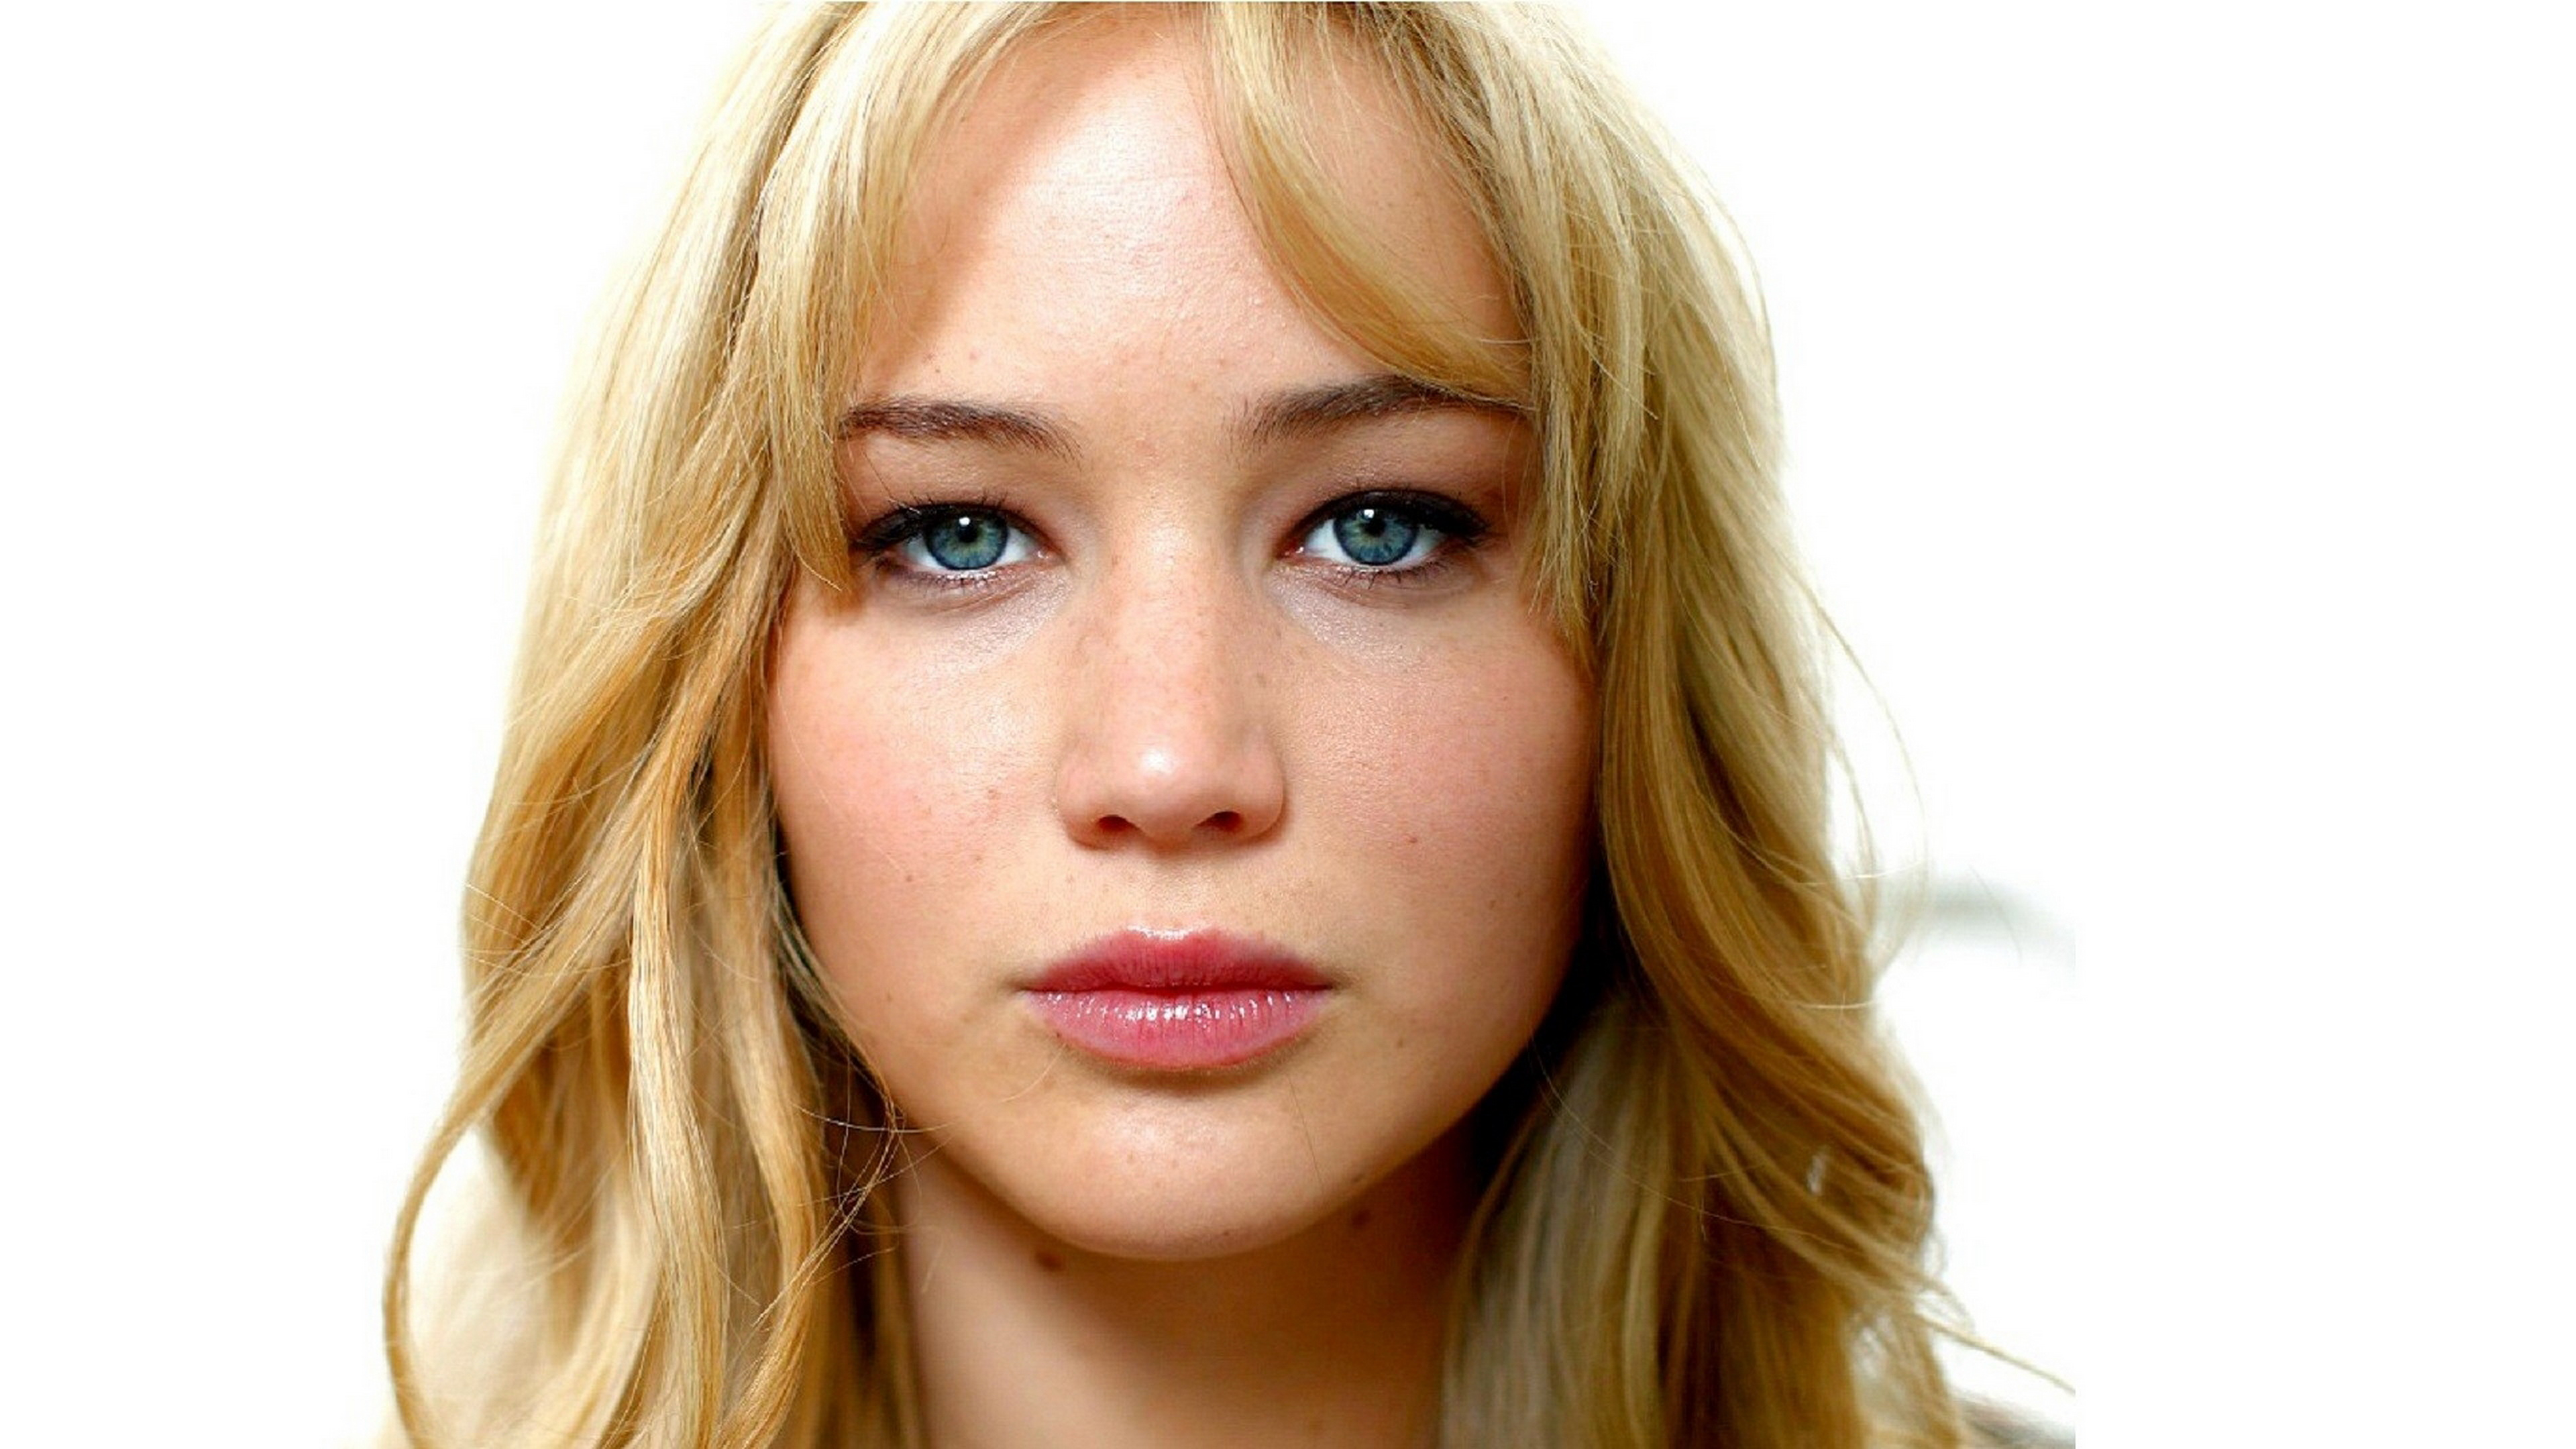 Jennifer Lawrence 4k Ultra HD Wallpaper And Background